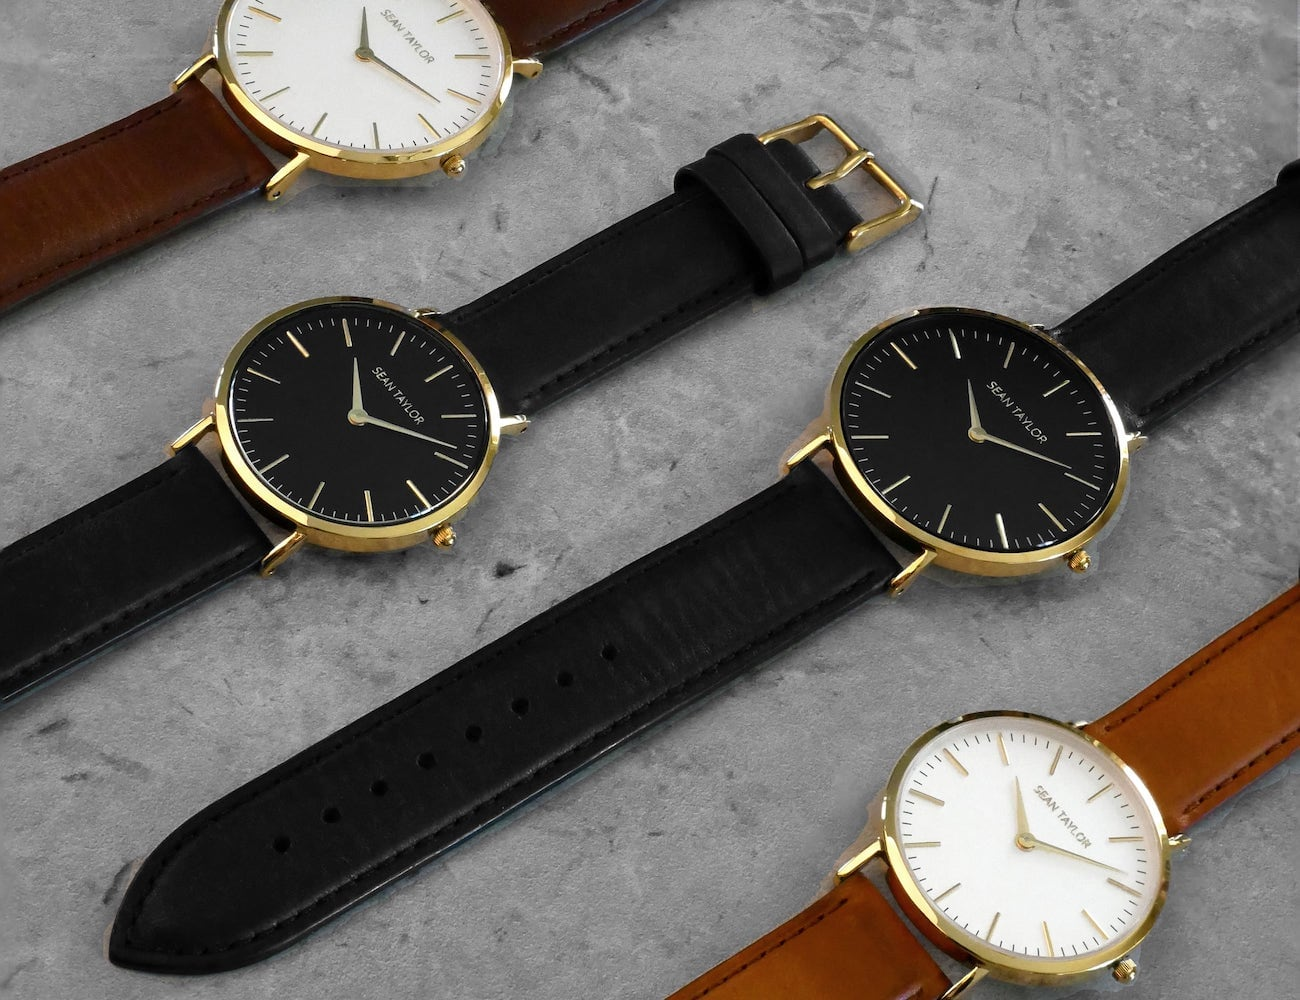 Sean Taylor Italian Leather Minimalist Watch is elegant and durable